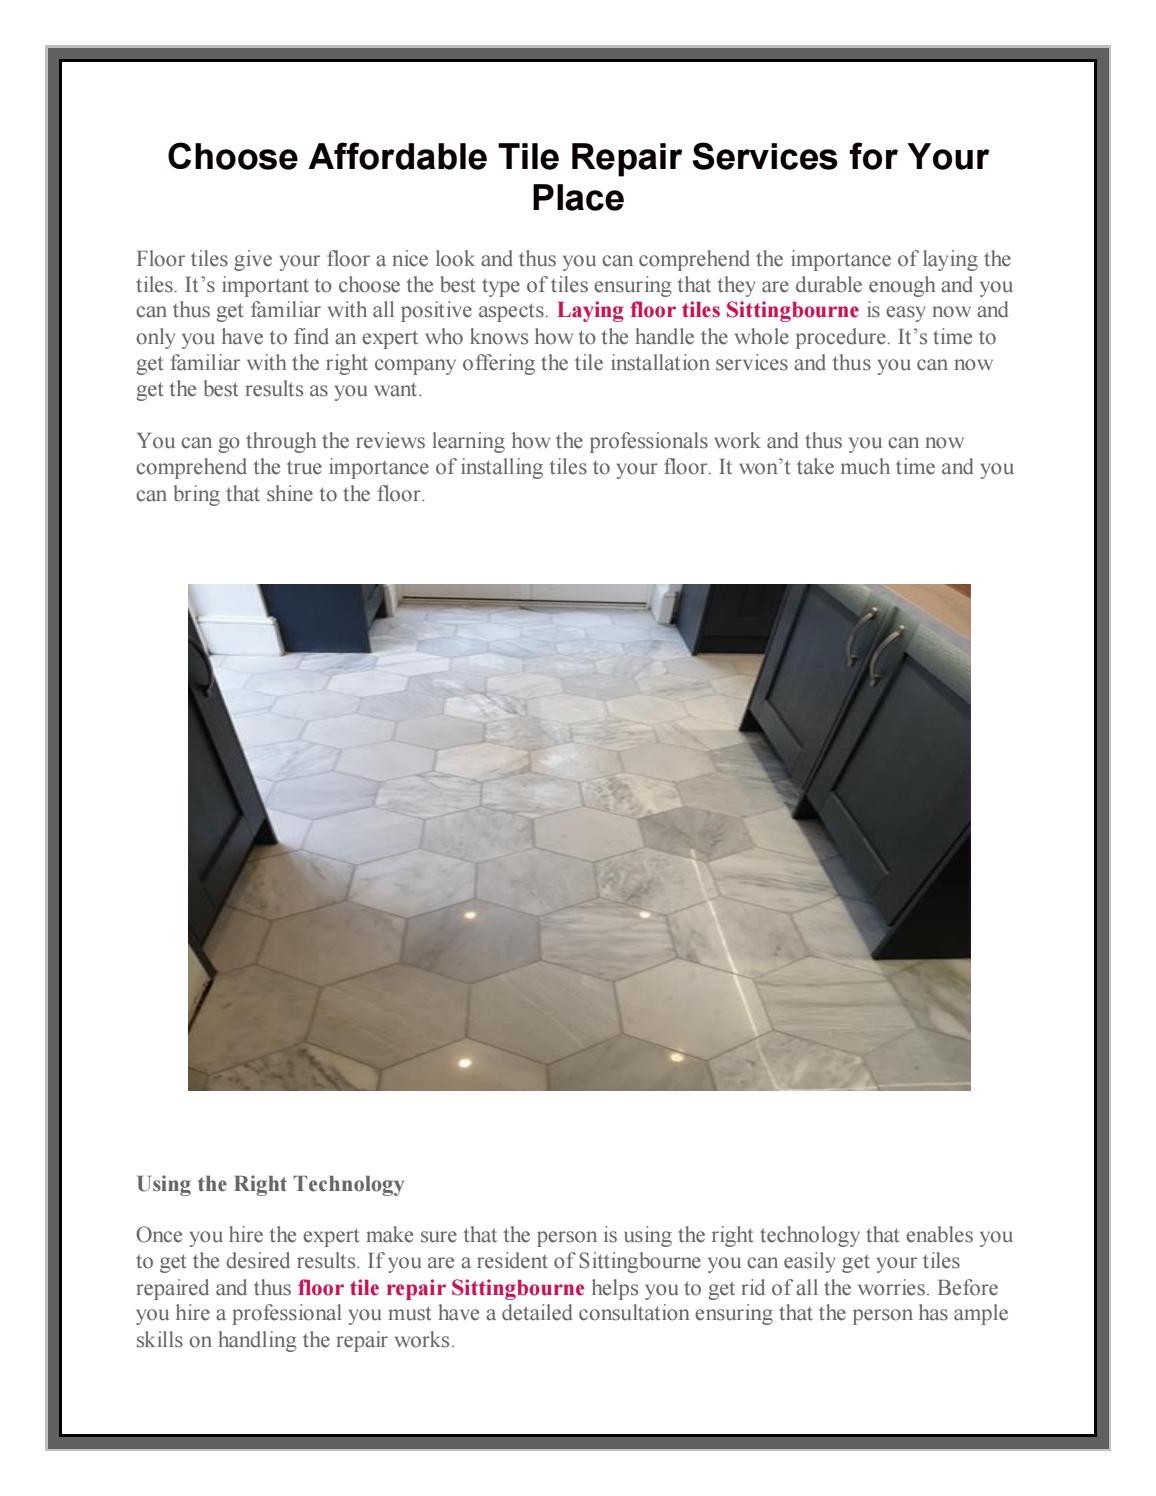 Choose Affordable Tile Repair Services For Your Place By Soni Soni Issuu